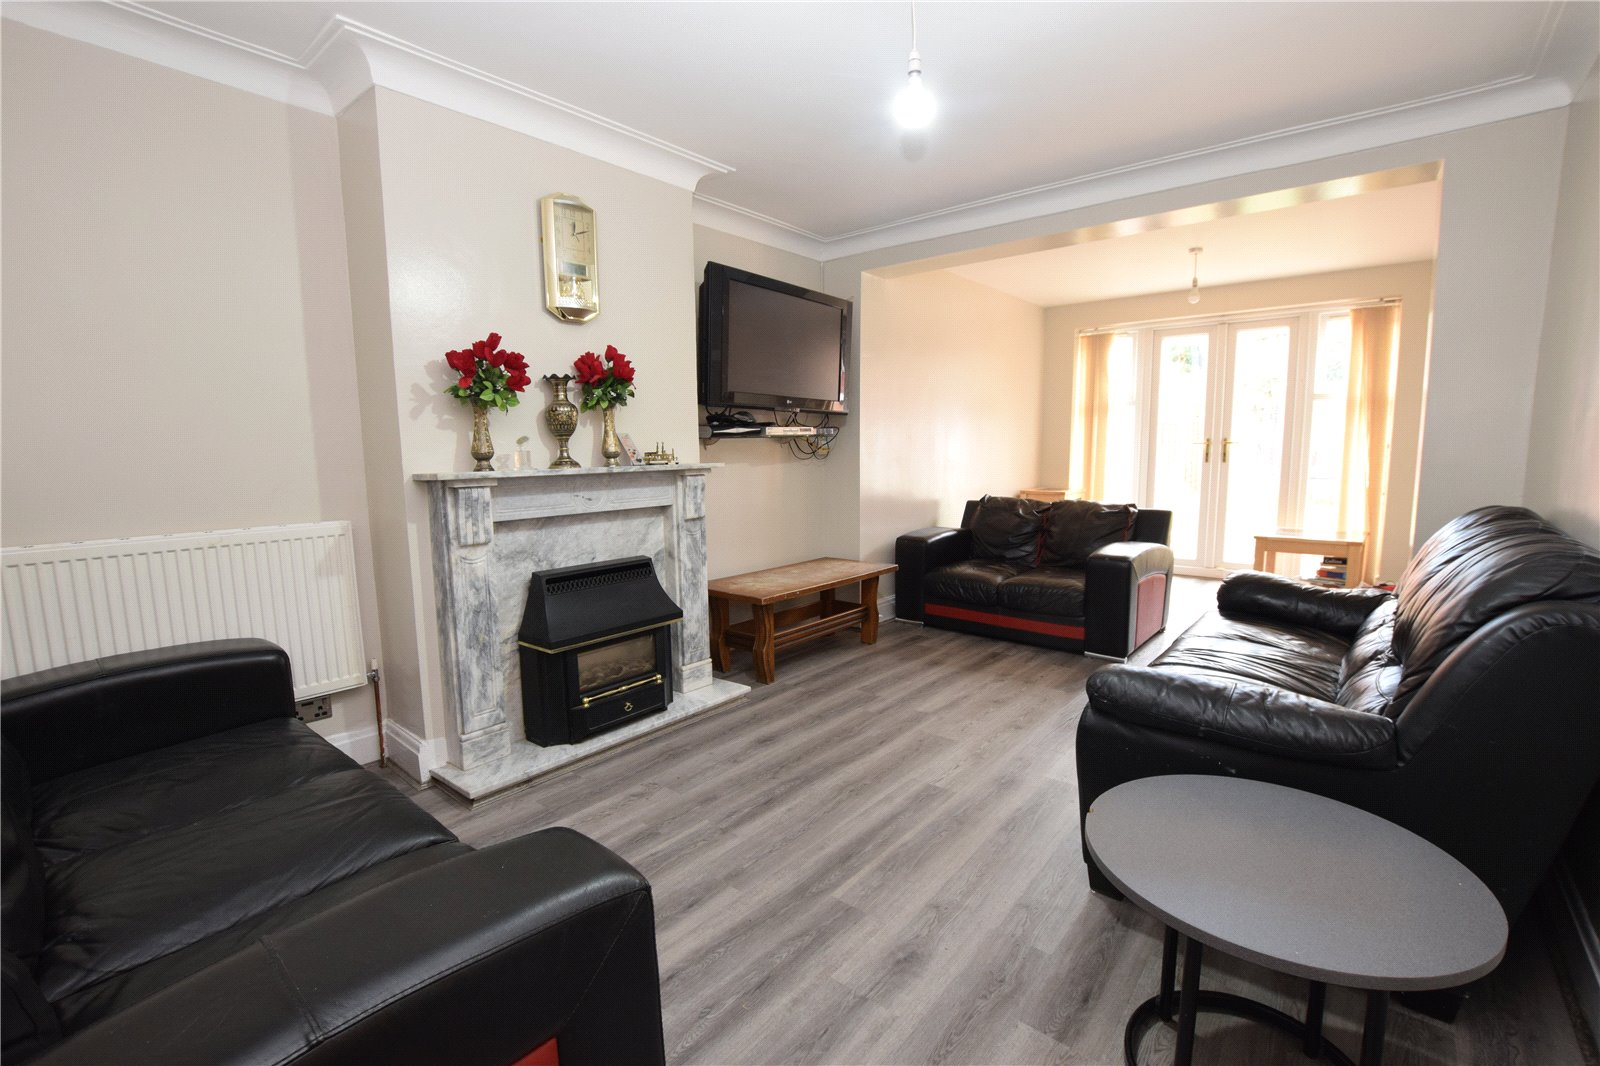 Property for sale in Headingley, interior reception room, spacious lounge with three sofas